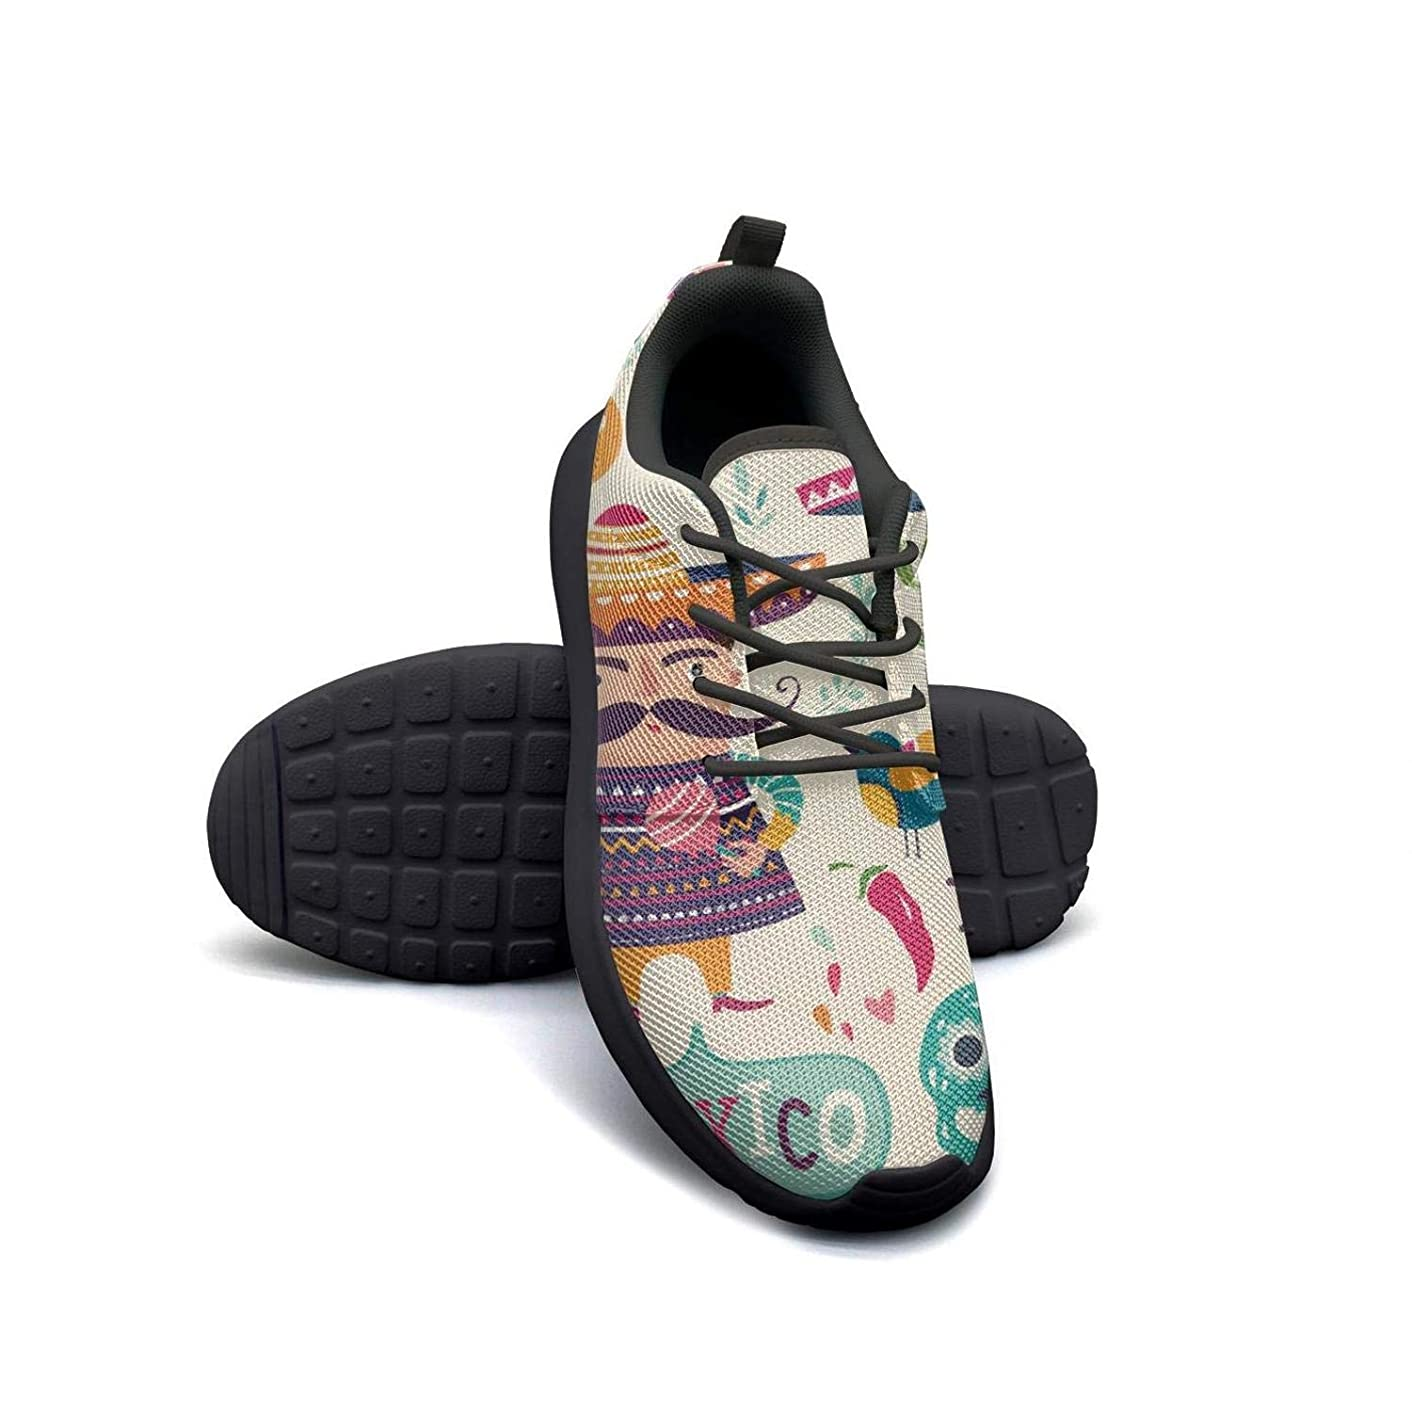 YSLC Funny Giraffe Print theam Running Shoes Lightweight for Women Sneaker Athletic Quick Dry Shoes